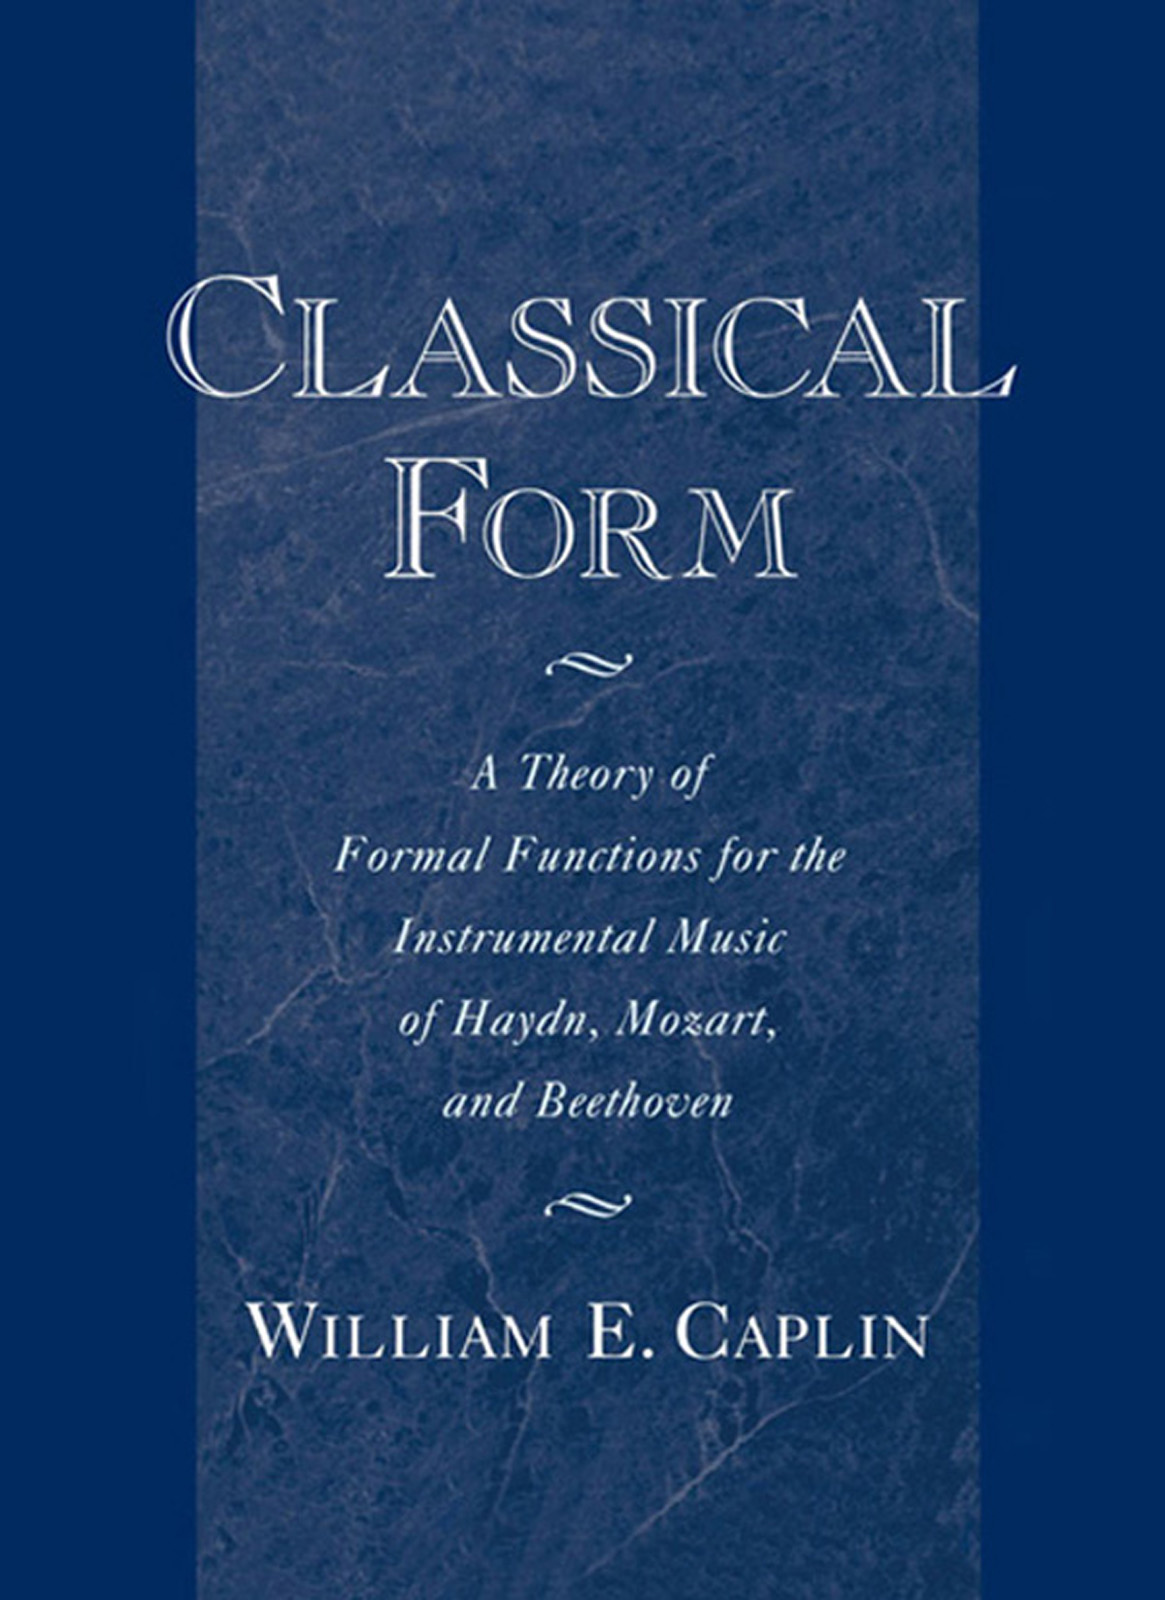 Classical Form:A Theory of Formal Functions for the Instrumental Music of Haydn, Mozart, and Beethoven